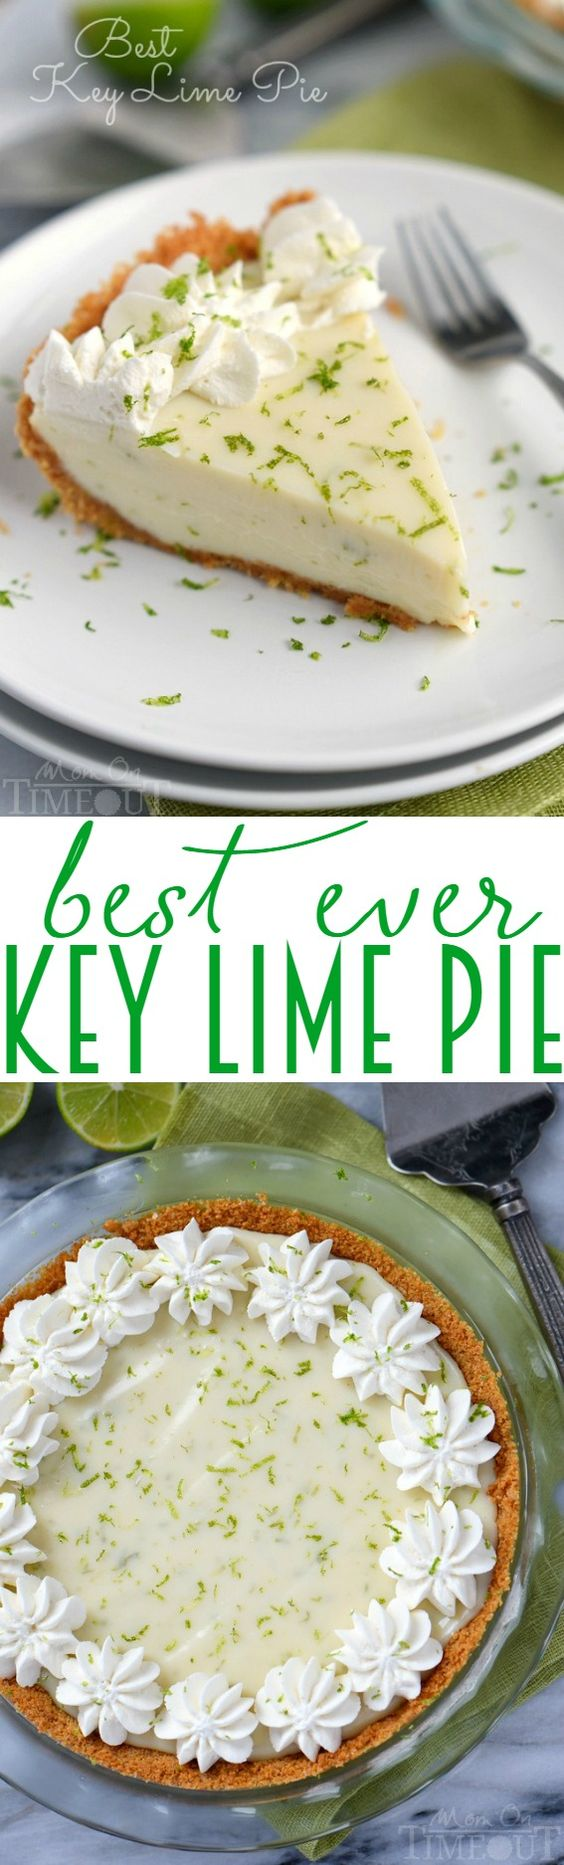 The Best Key Lime Pie recipe EVER! And so darn easy too! You won't be able to stop at just one slice! | MomOnTimeout.com | #recipe